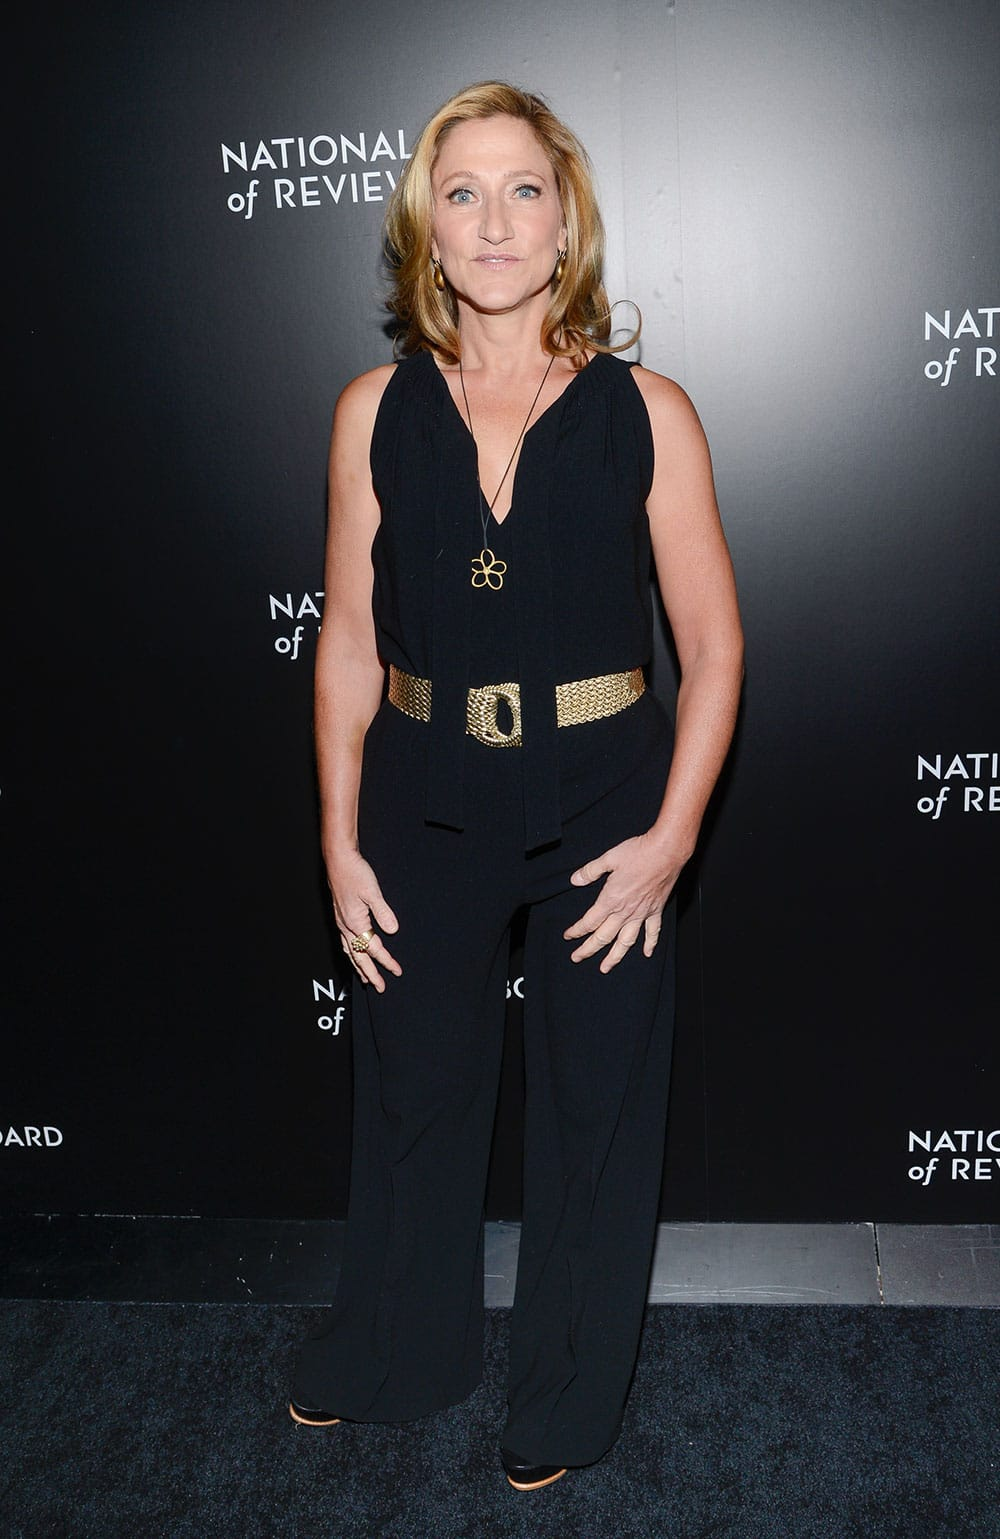 Actress Edie Falco attends the National Board of Review awards gala at Cipriani 42nd Street, in New York.